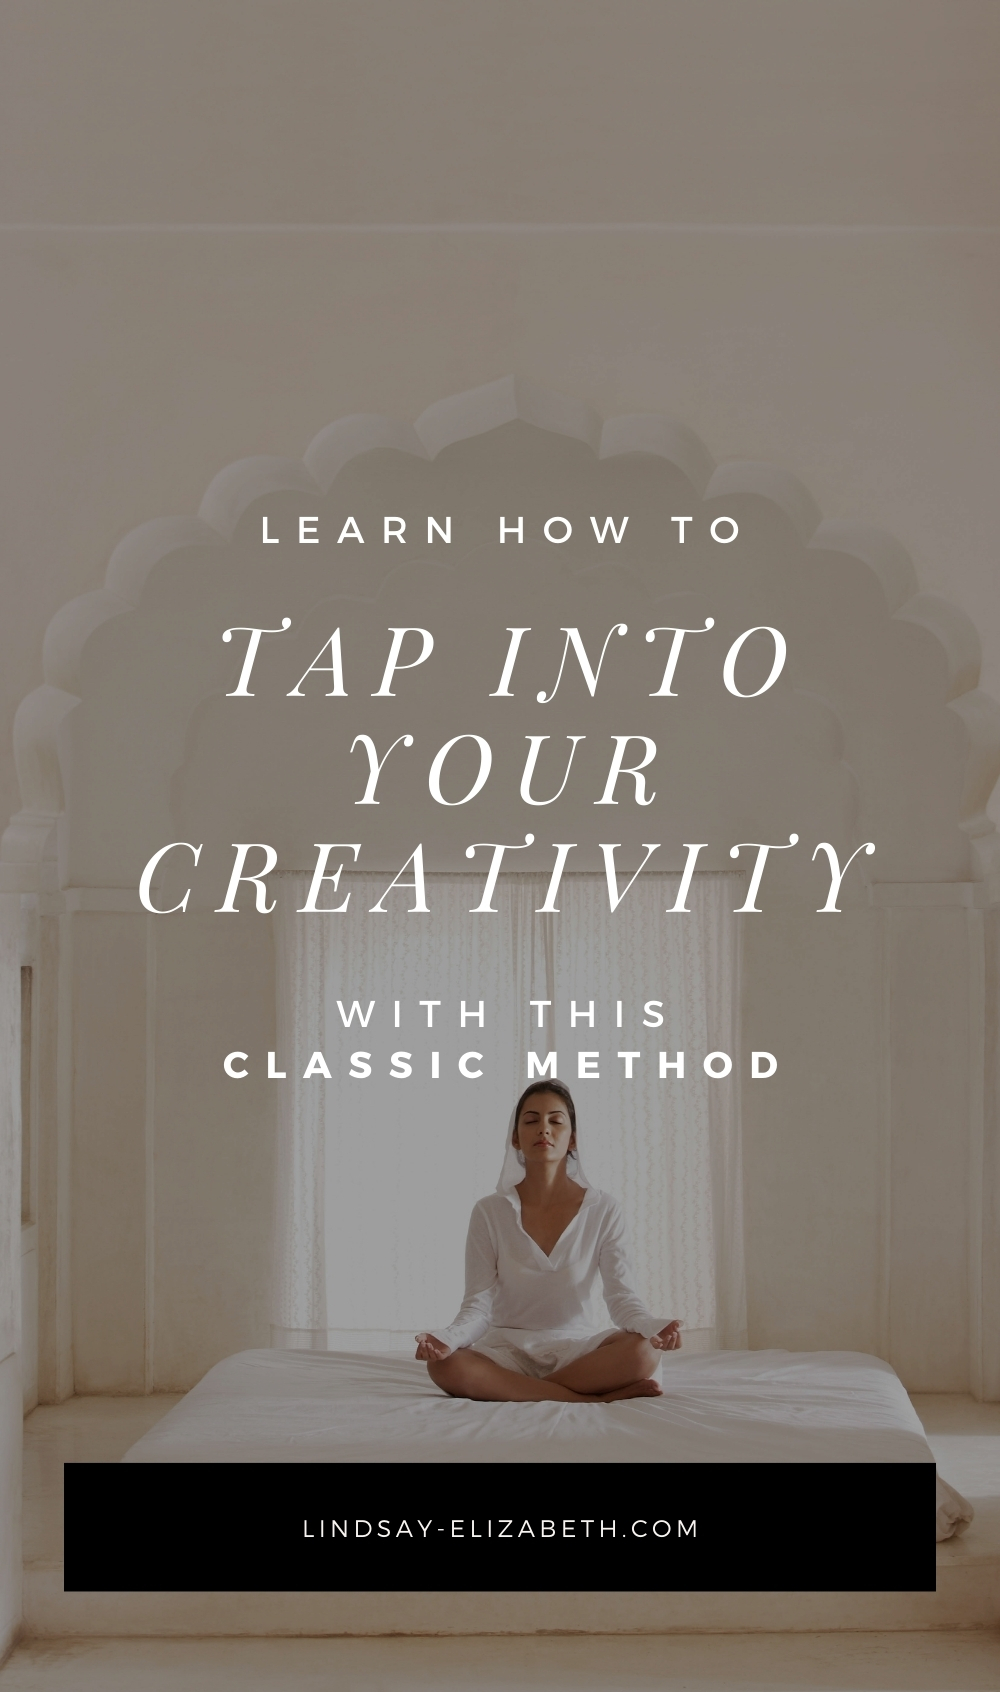 Want to learn how to more easily tap into your intuition, creativity, and ability to problem-solve? The Silva Method was created by José Silva in 1960 after he spent 22 years researching altered states of consciousness. The method has amassed over 6 million students in 110 countries since its founding. Find out what it's all about and how you can enroll in the free masterclass. #personalgrowth #selfgrowth #personaldevelopment #visualization #creativity